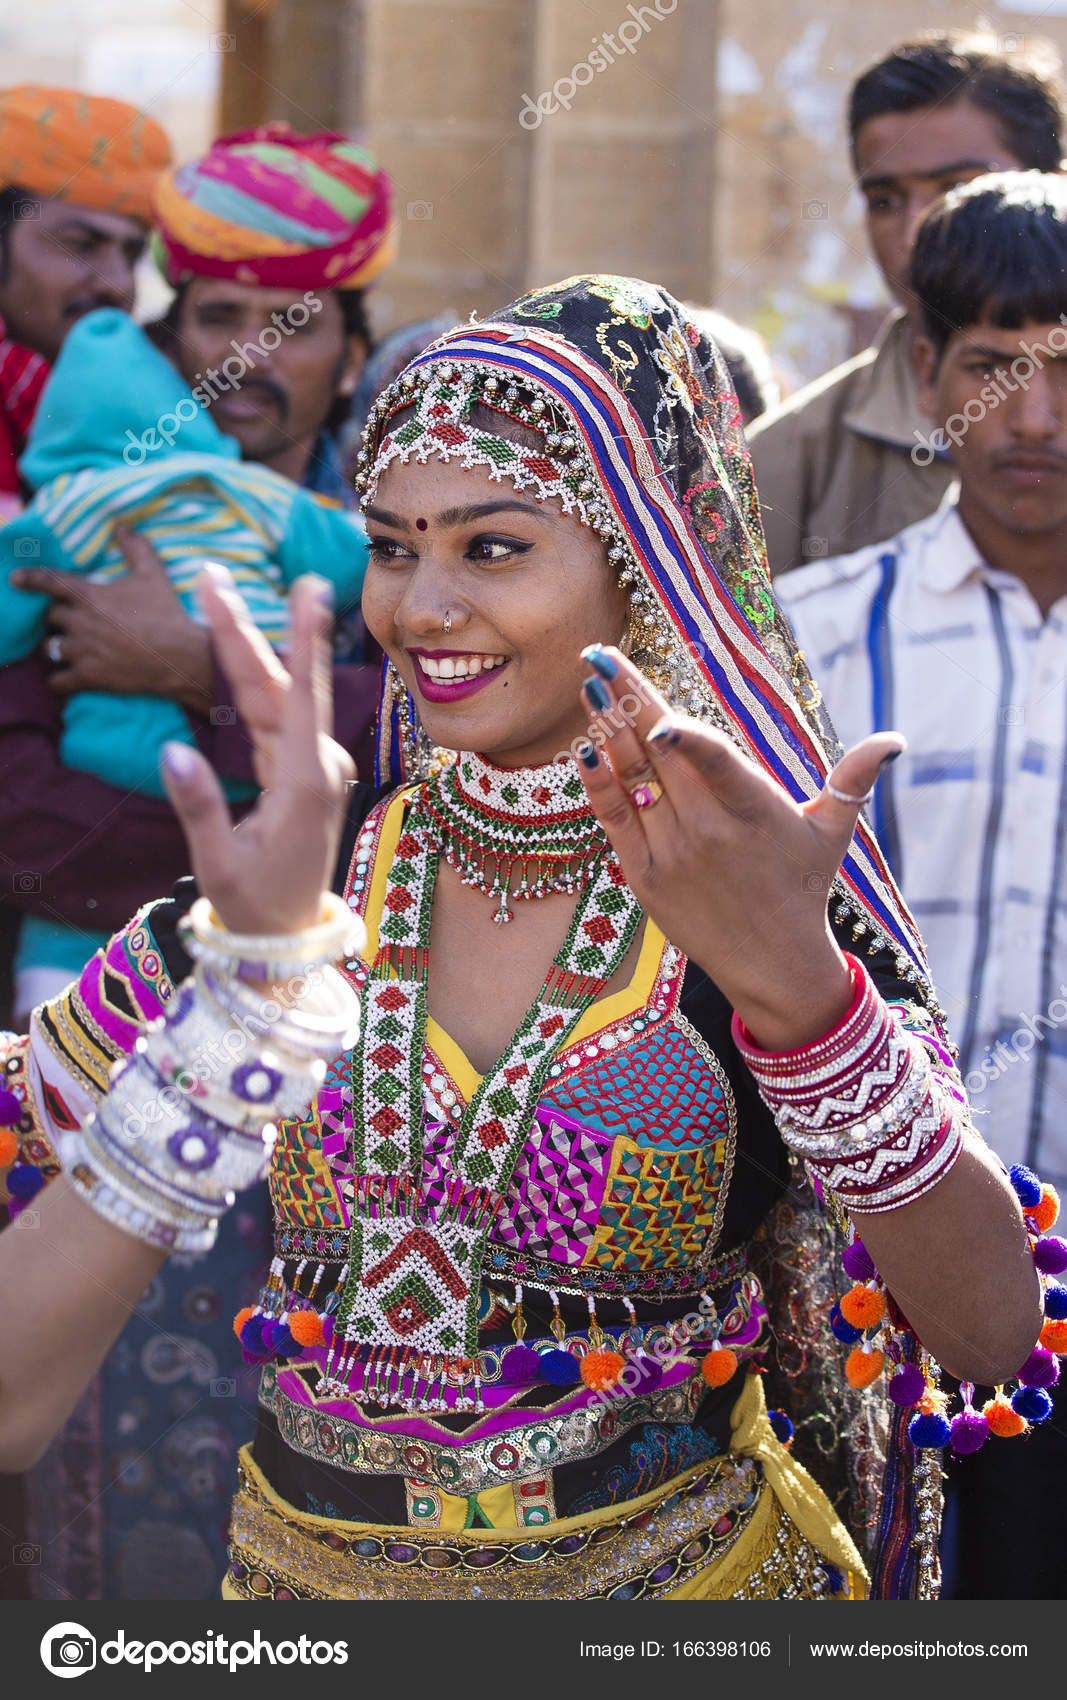 Rajasthan dress image